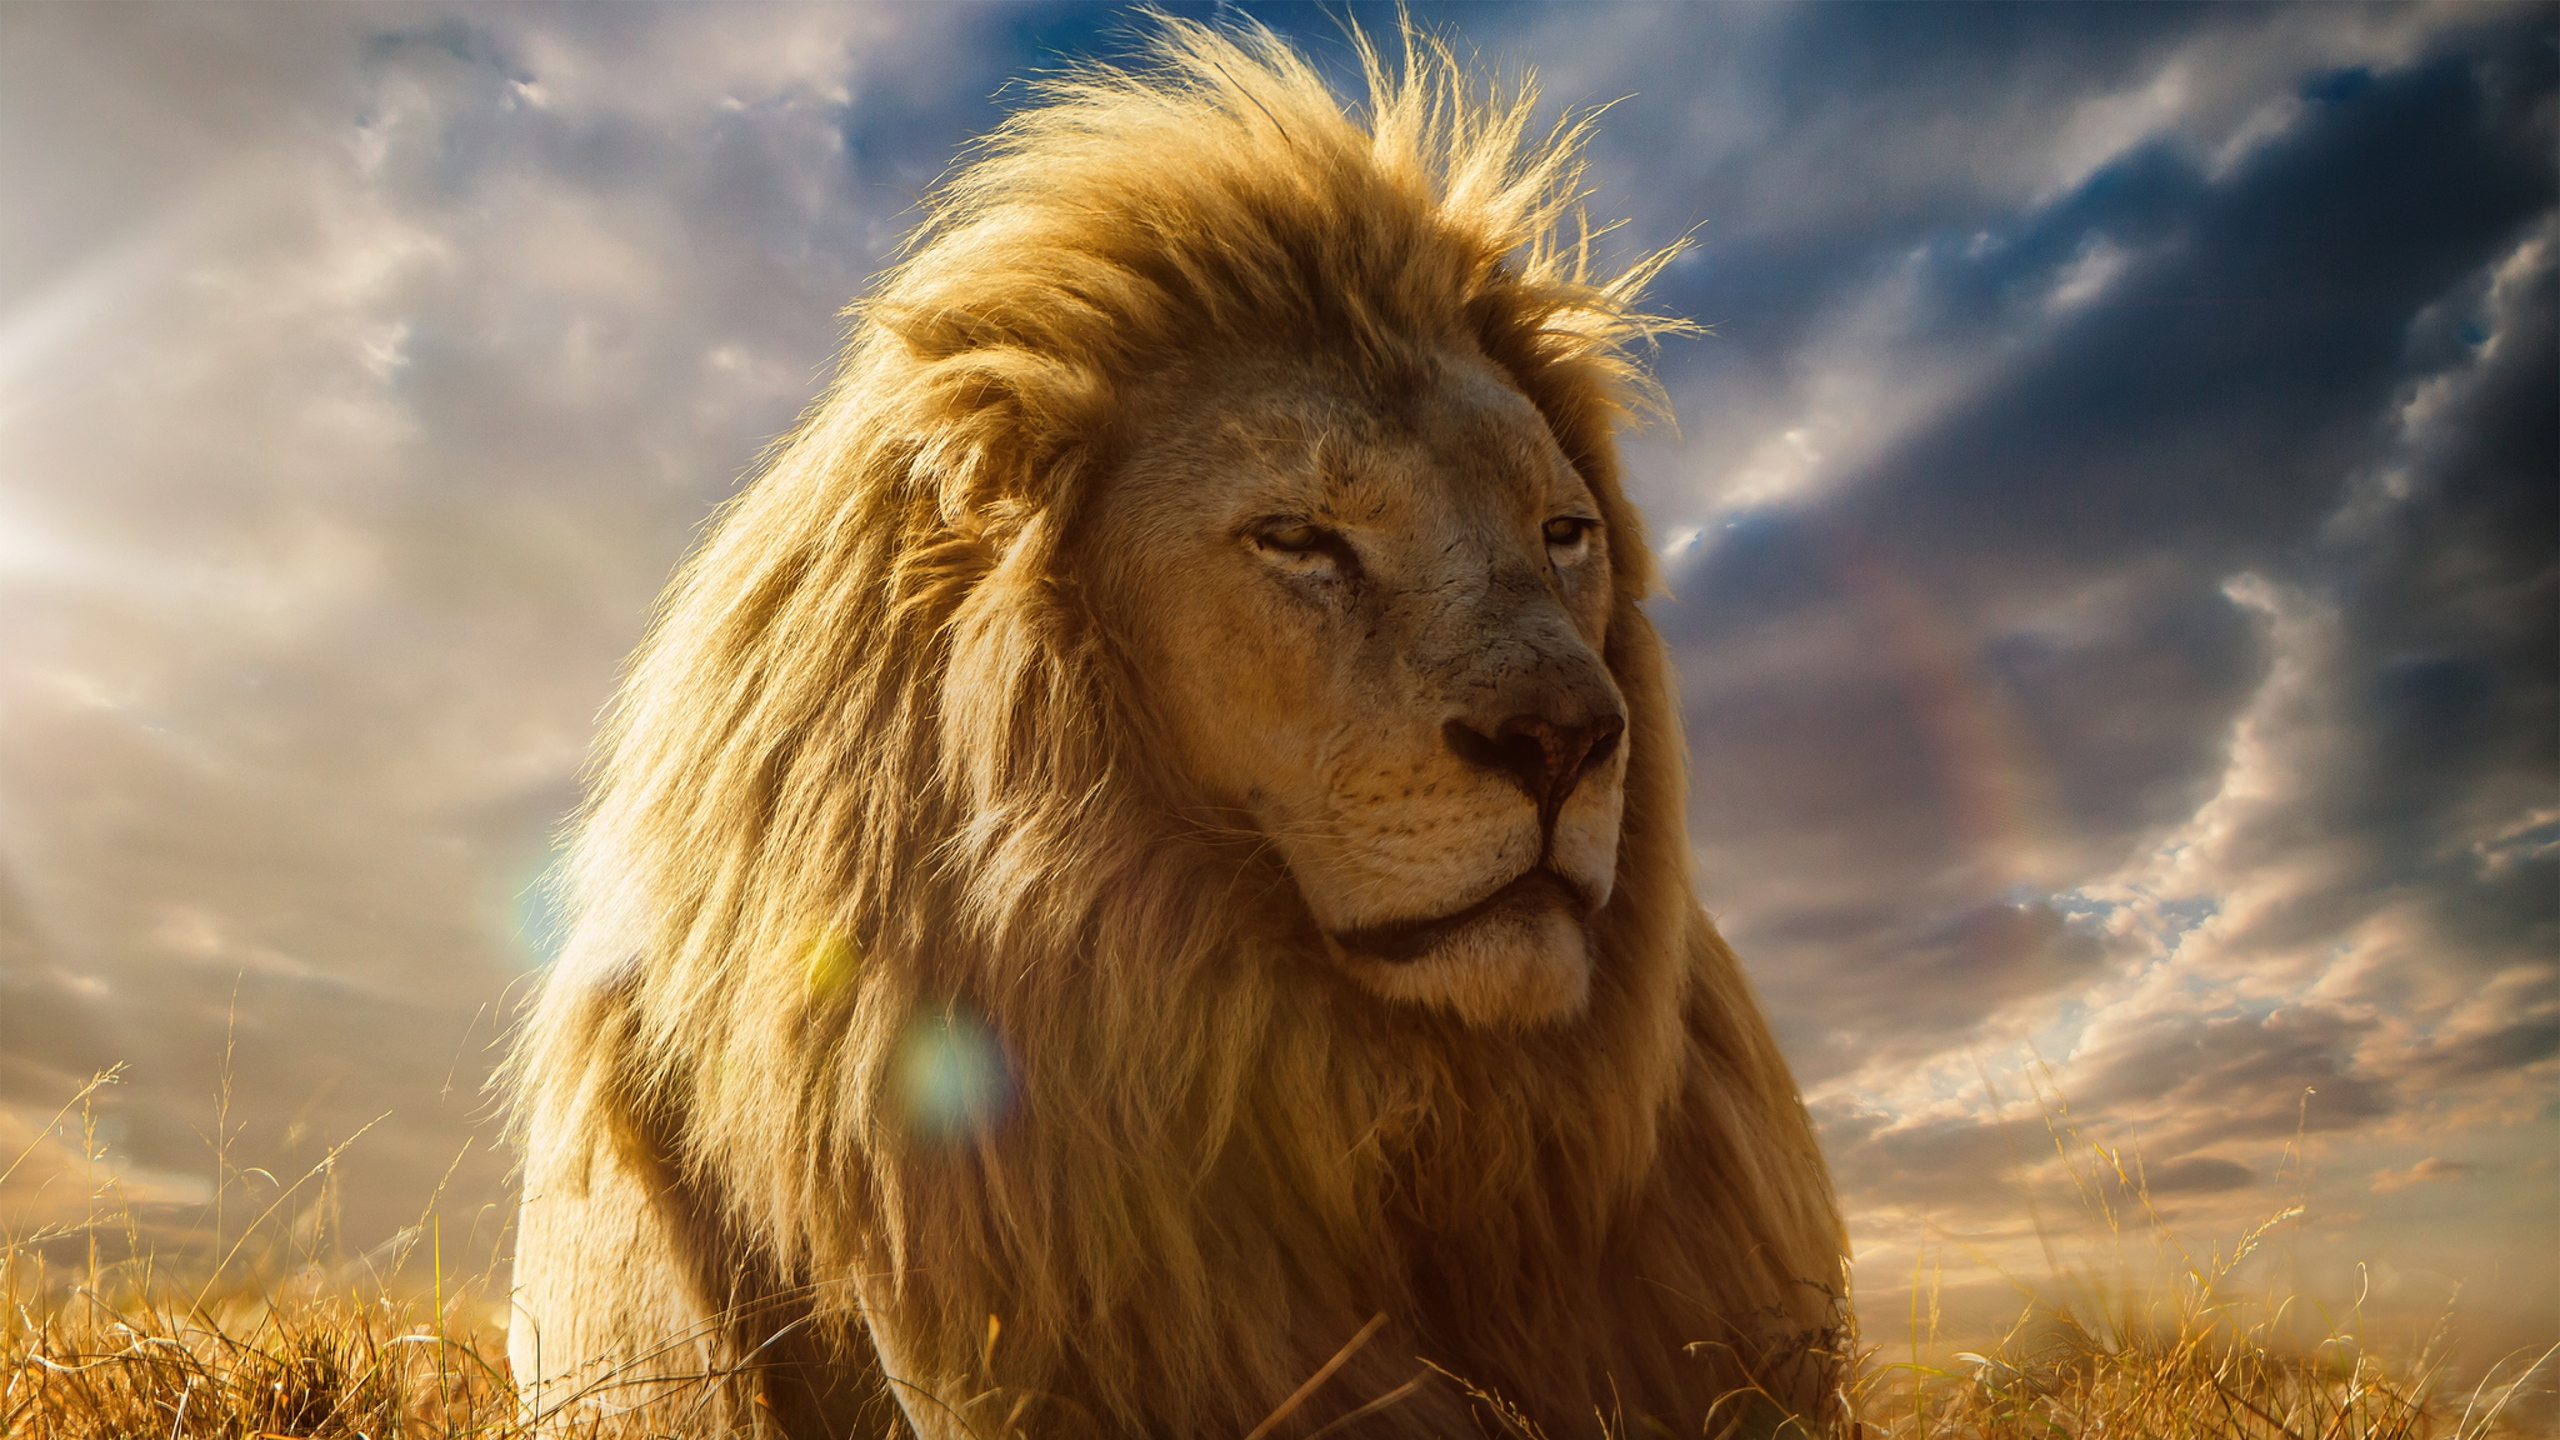 2560x1440 lion king 4k 1440p resolution hd 4k wallpapers, images